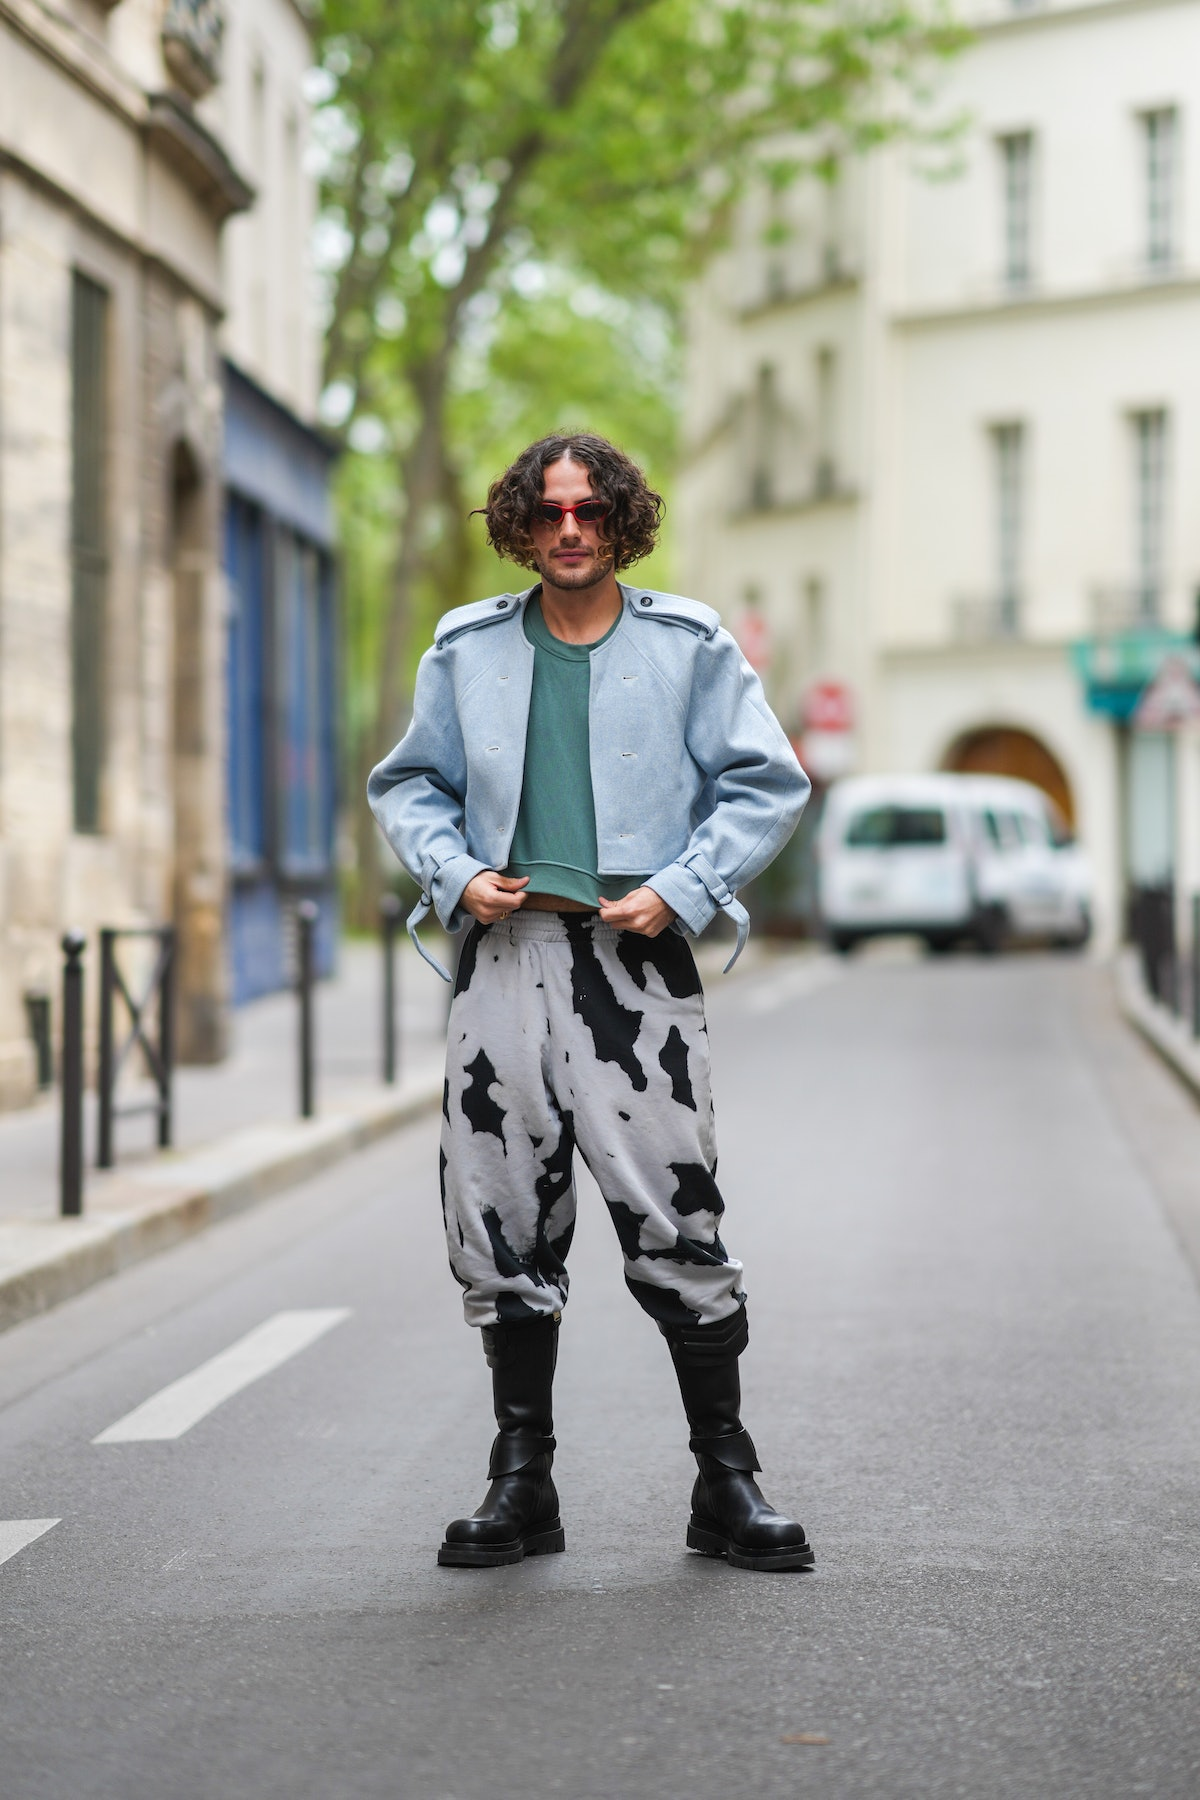 Alejandro Acero demonstrates how to wear combat boots with statement tie-dye sweatpants, a green shirt and a blue jacket